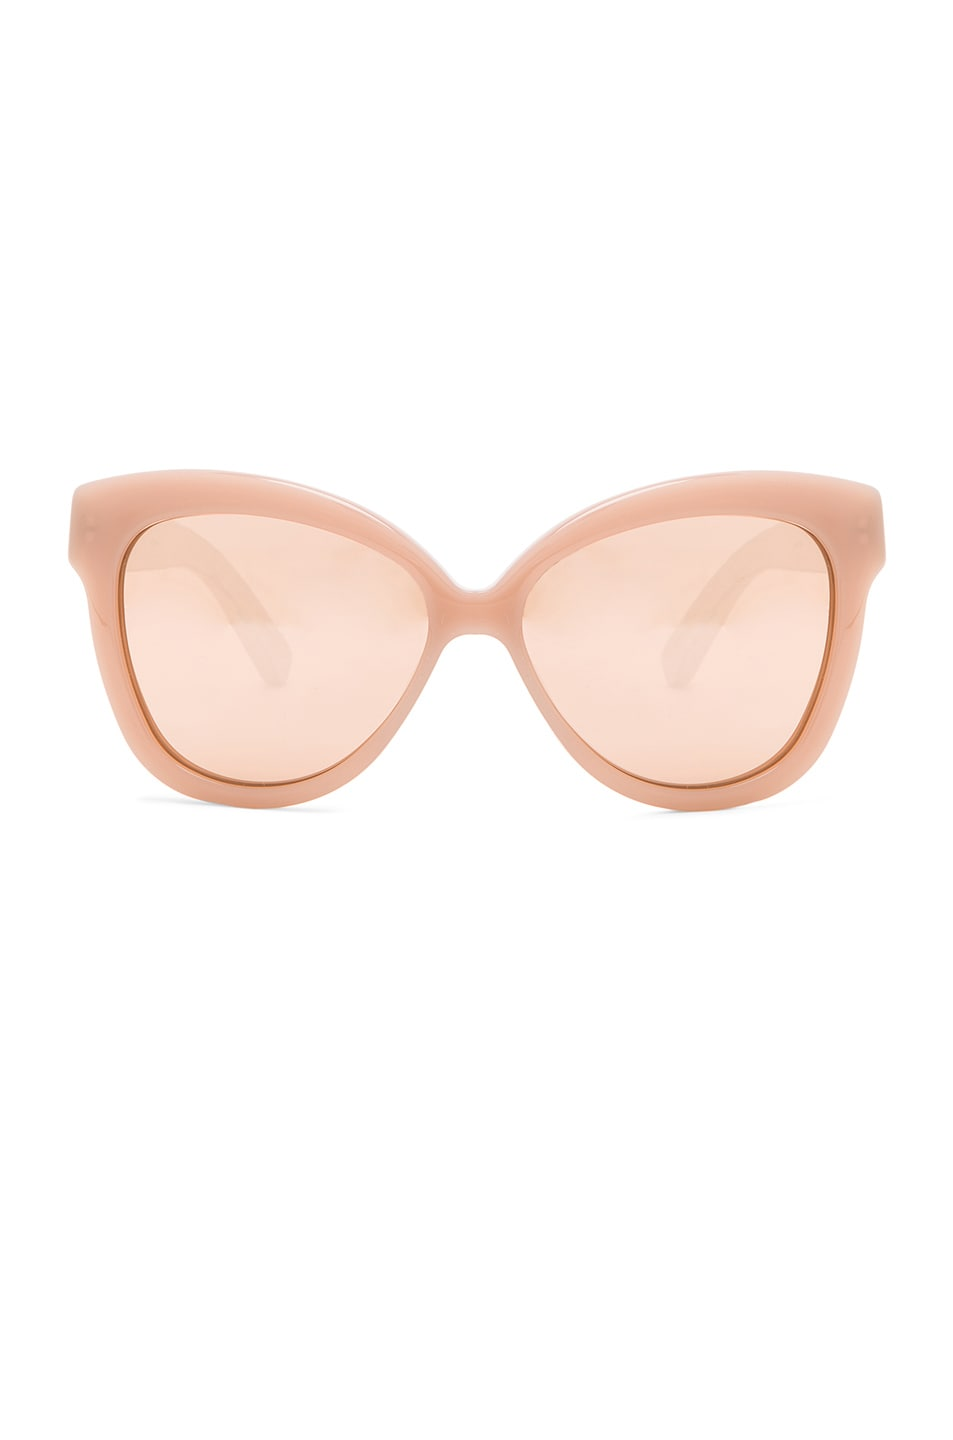 Image 1 of Linda Farrow Snake Skin Cat Eye Sunglasses in Dusty Rose